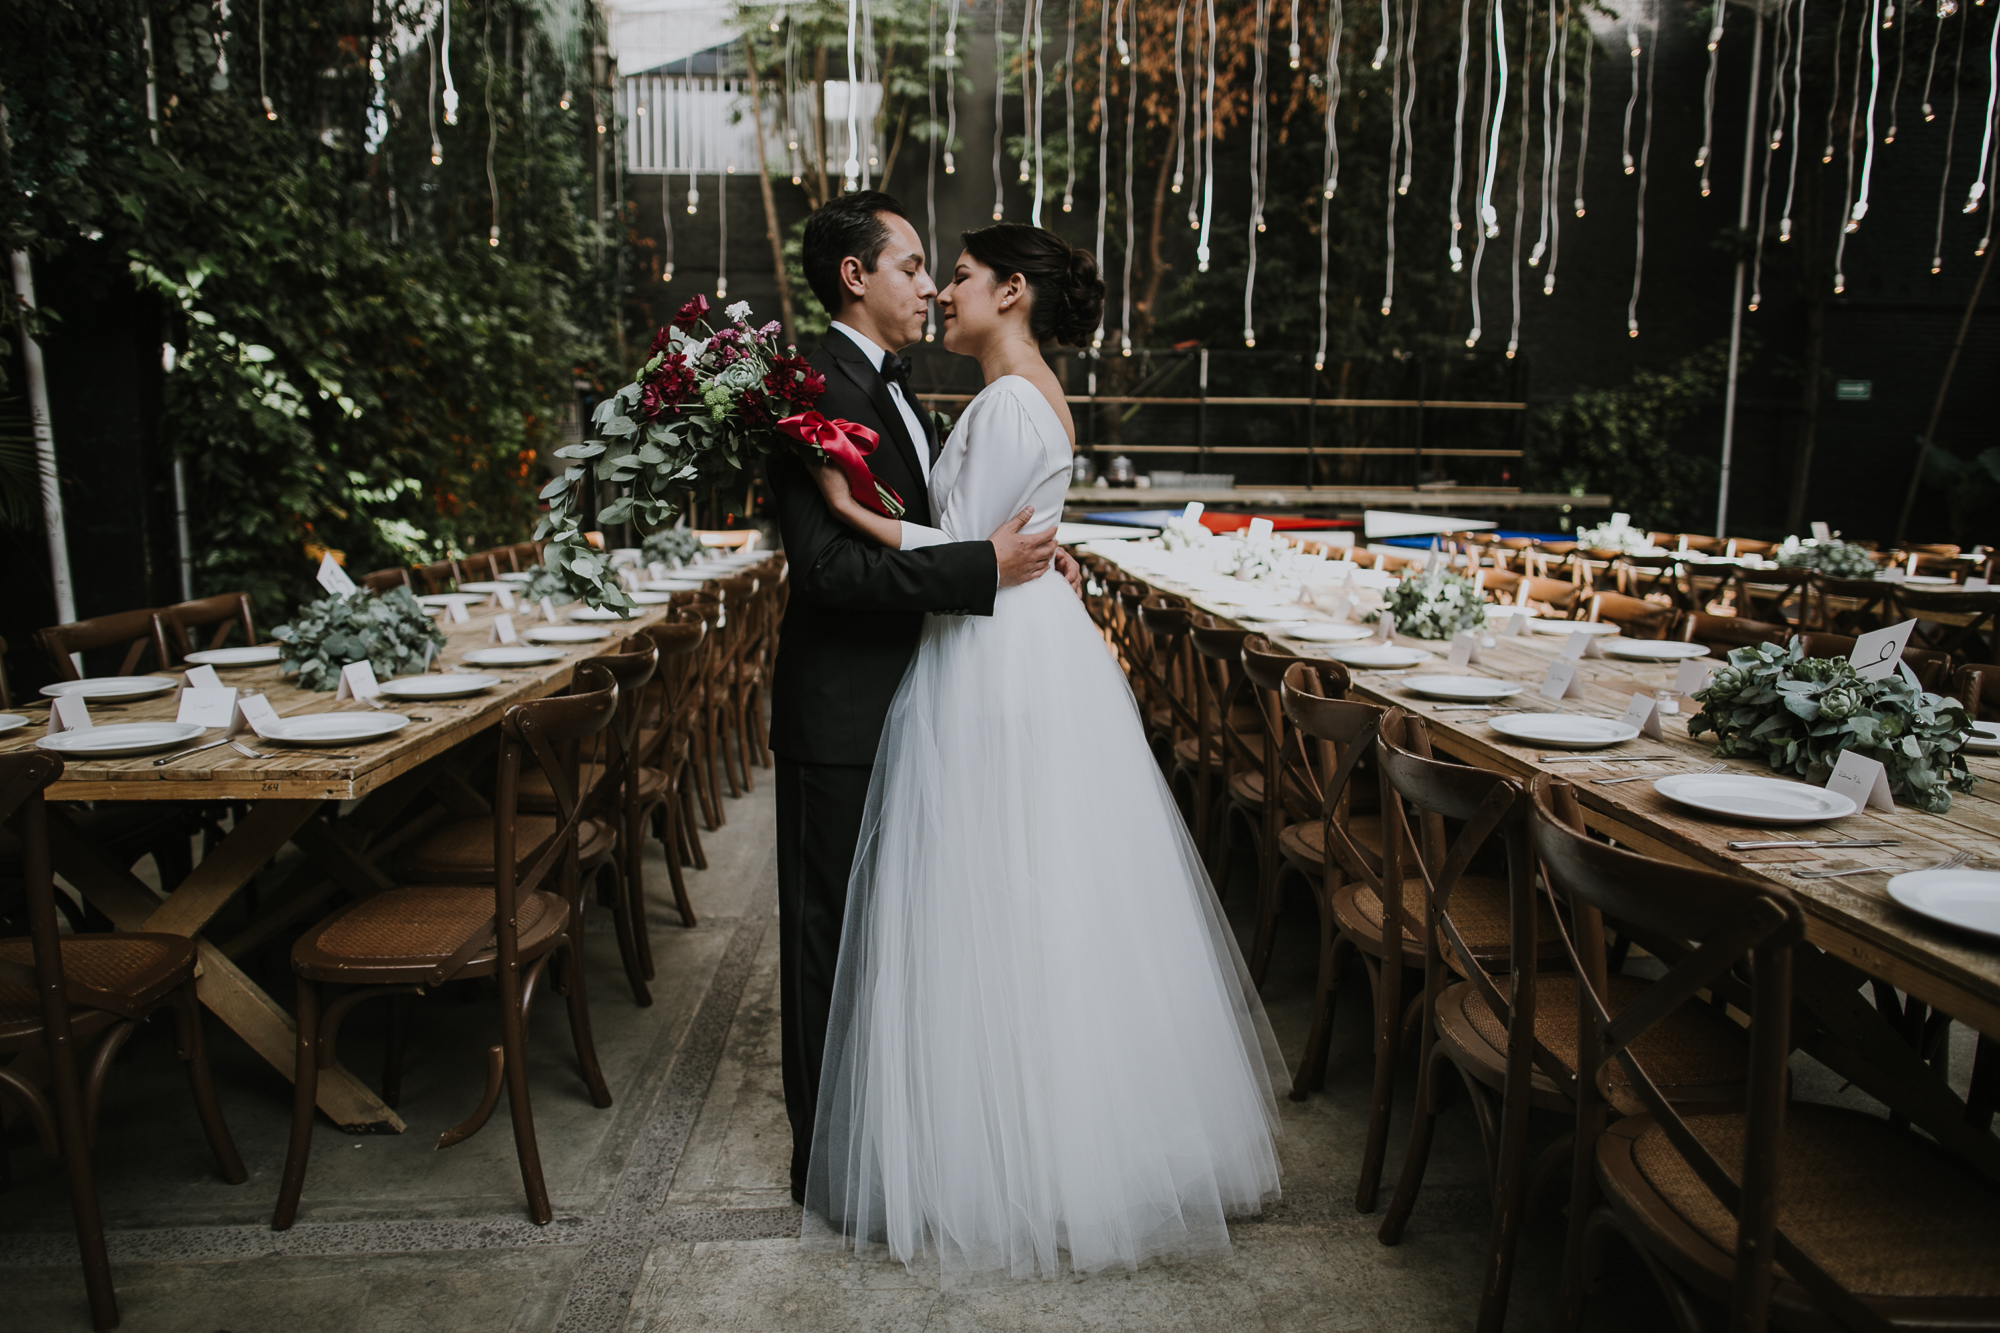 alfonso_flores_alternative_wedding_photographer_cdmx_roma_condesa_foro_indie_gissyotto-40.jpg